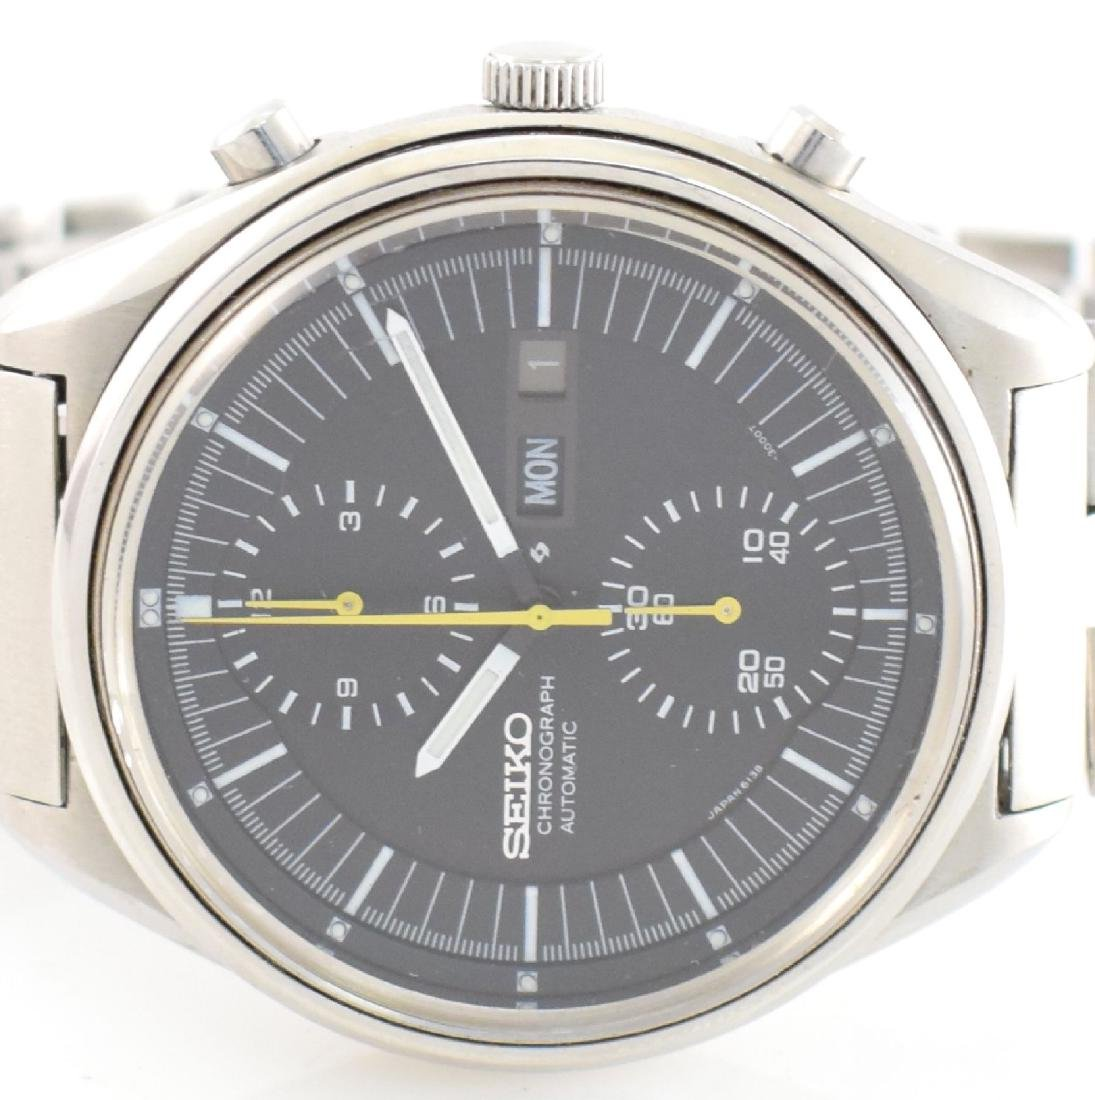 SEIKO gents wristwatch with chronograph in steel - 2